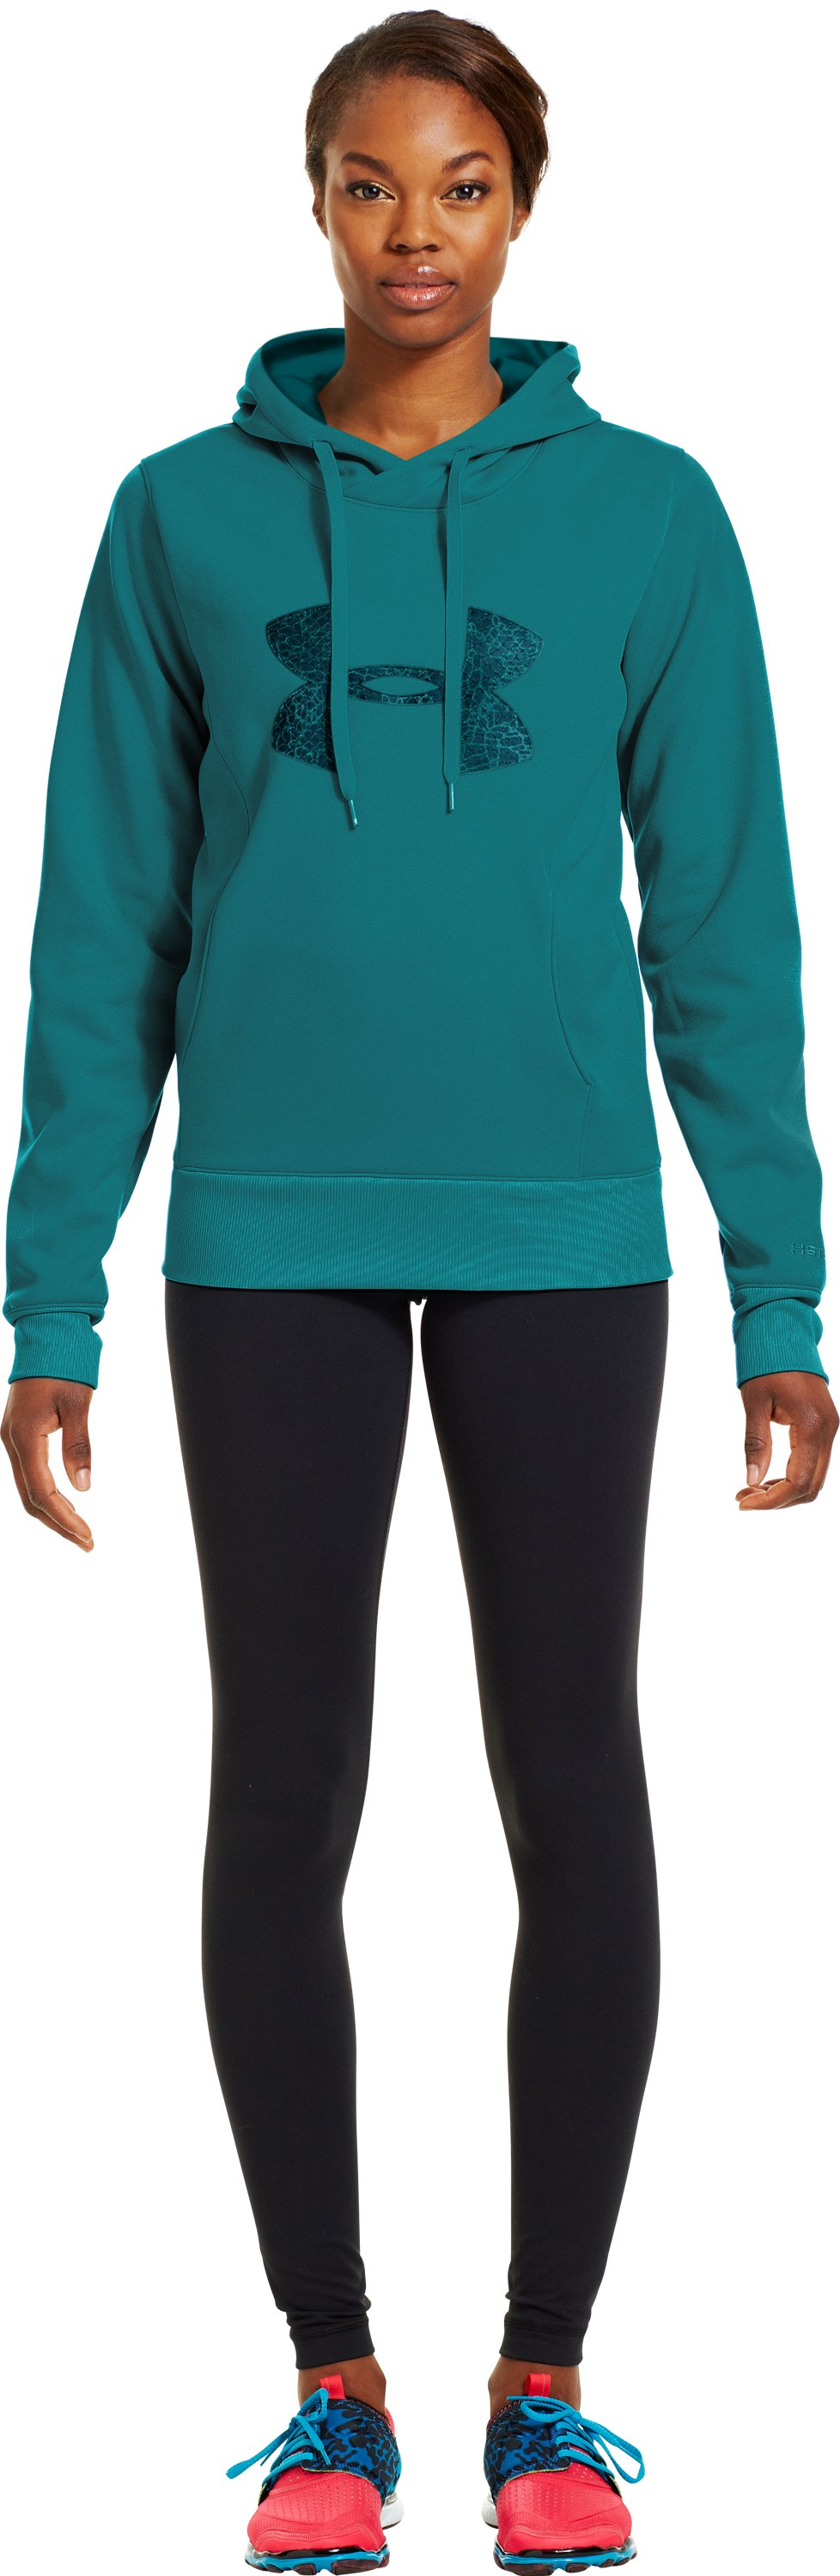 Women's Armour® Fleece Storm Pulse Big Logo Hoodie, CERULEAN, Front